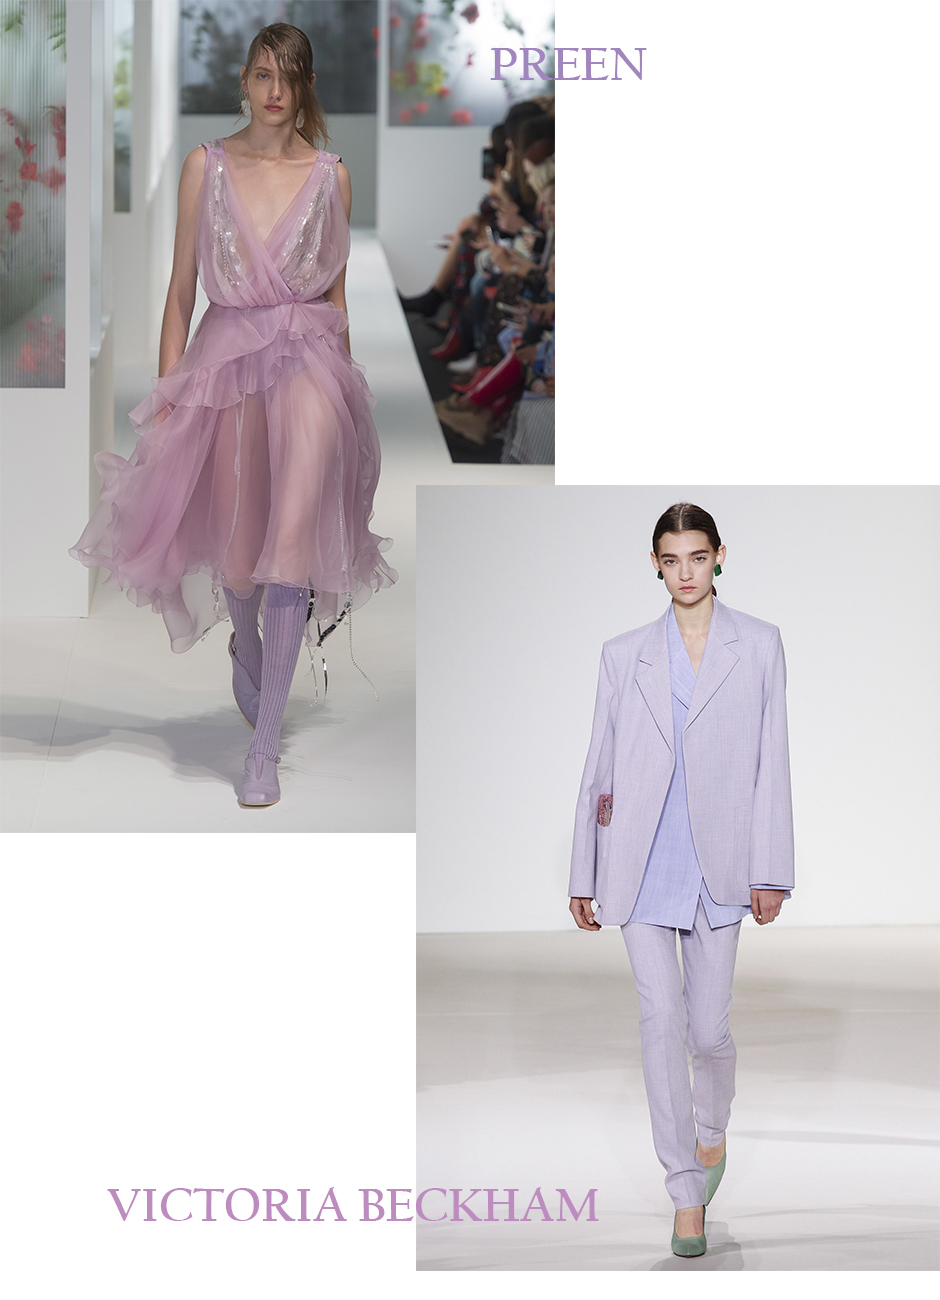 Preen Victoria Beckham Pastel Outfit Street Style Outfit Inspiration #streetstyle #gucci #babyblue #lavender #lilac #pastel #pastelcolors #pasteltrend #pasteloutfit #fashionblogger #styleblogger #styleblog #beverlyhills #lablogger #springsummer #trends